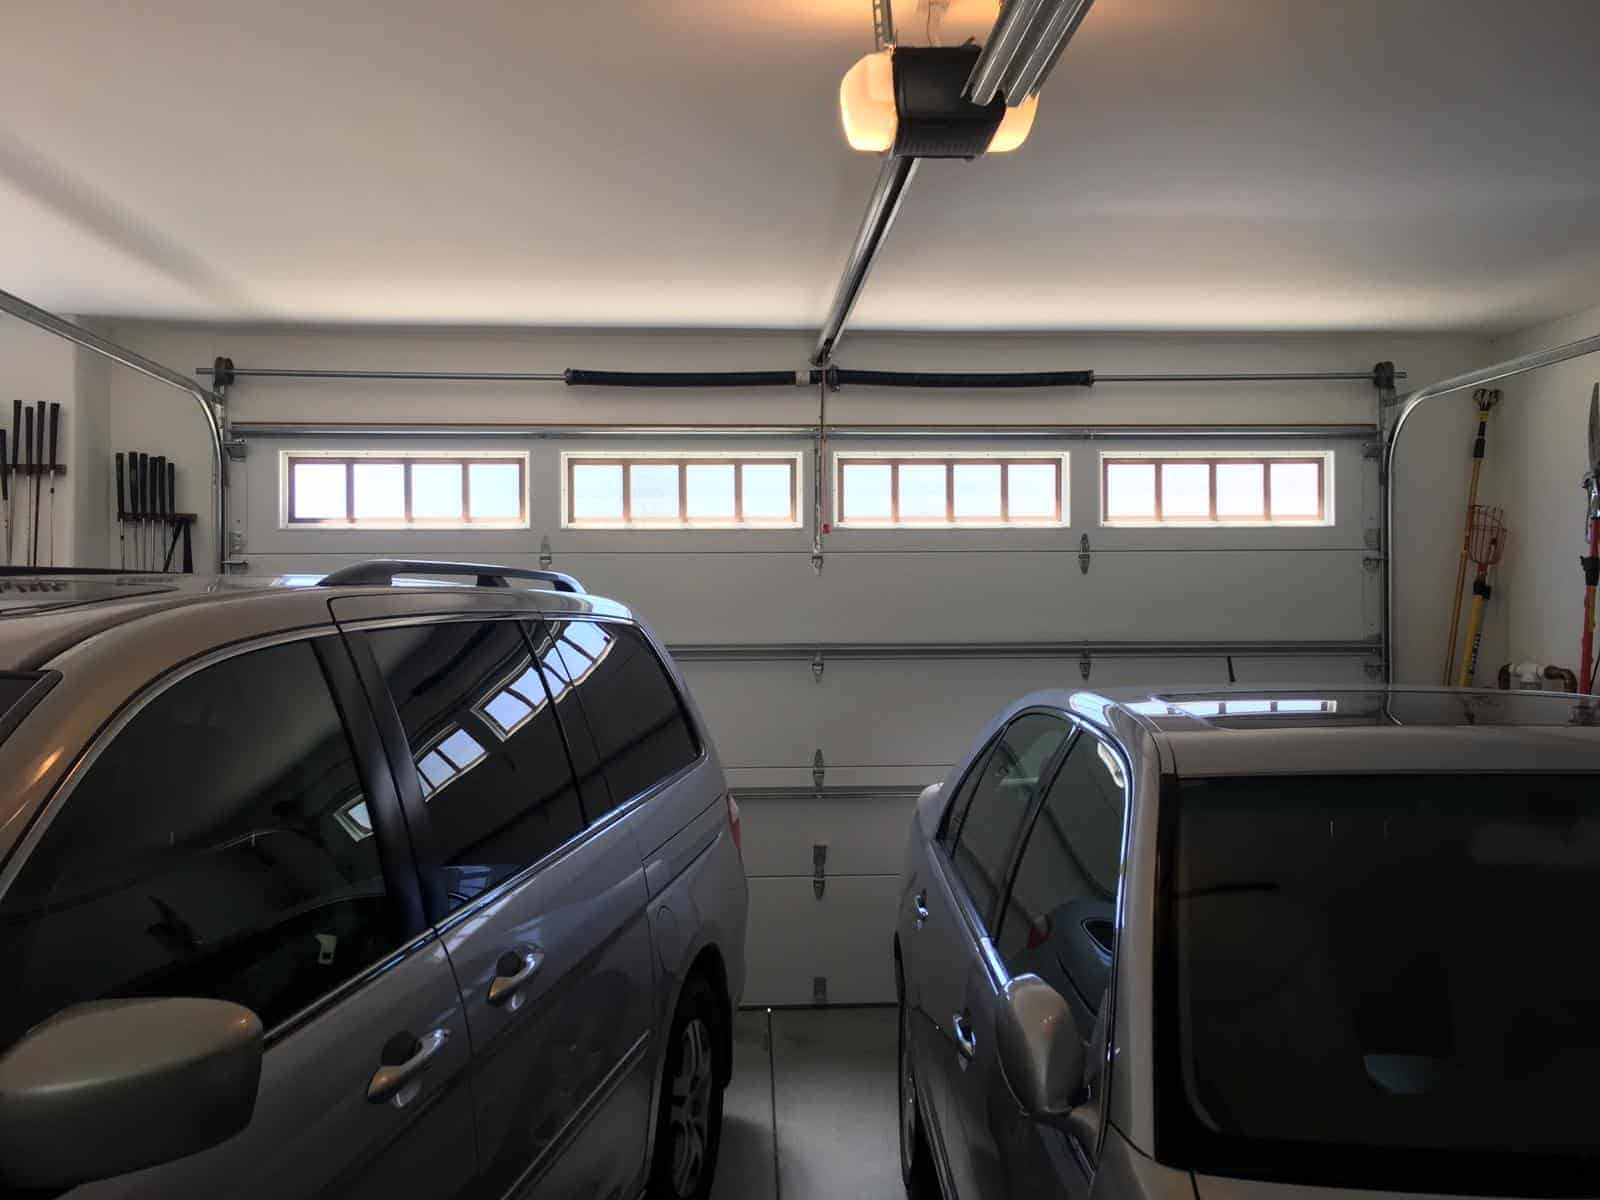 Garage Door Opener Installation In El Cajon